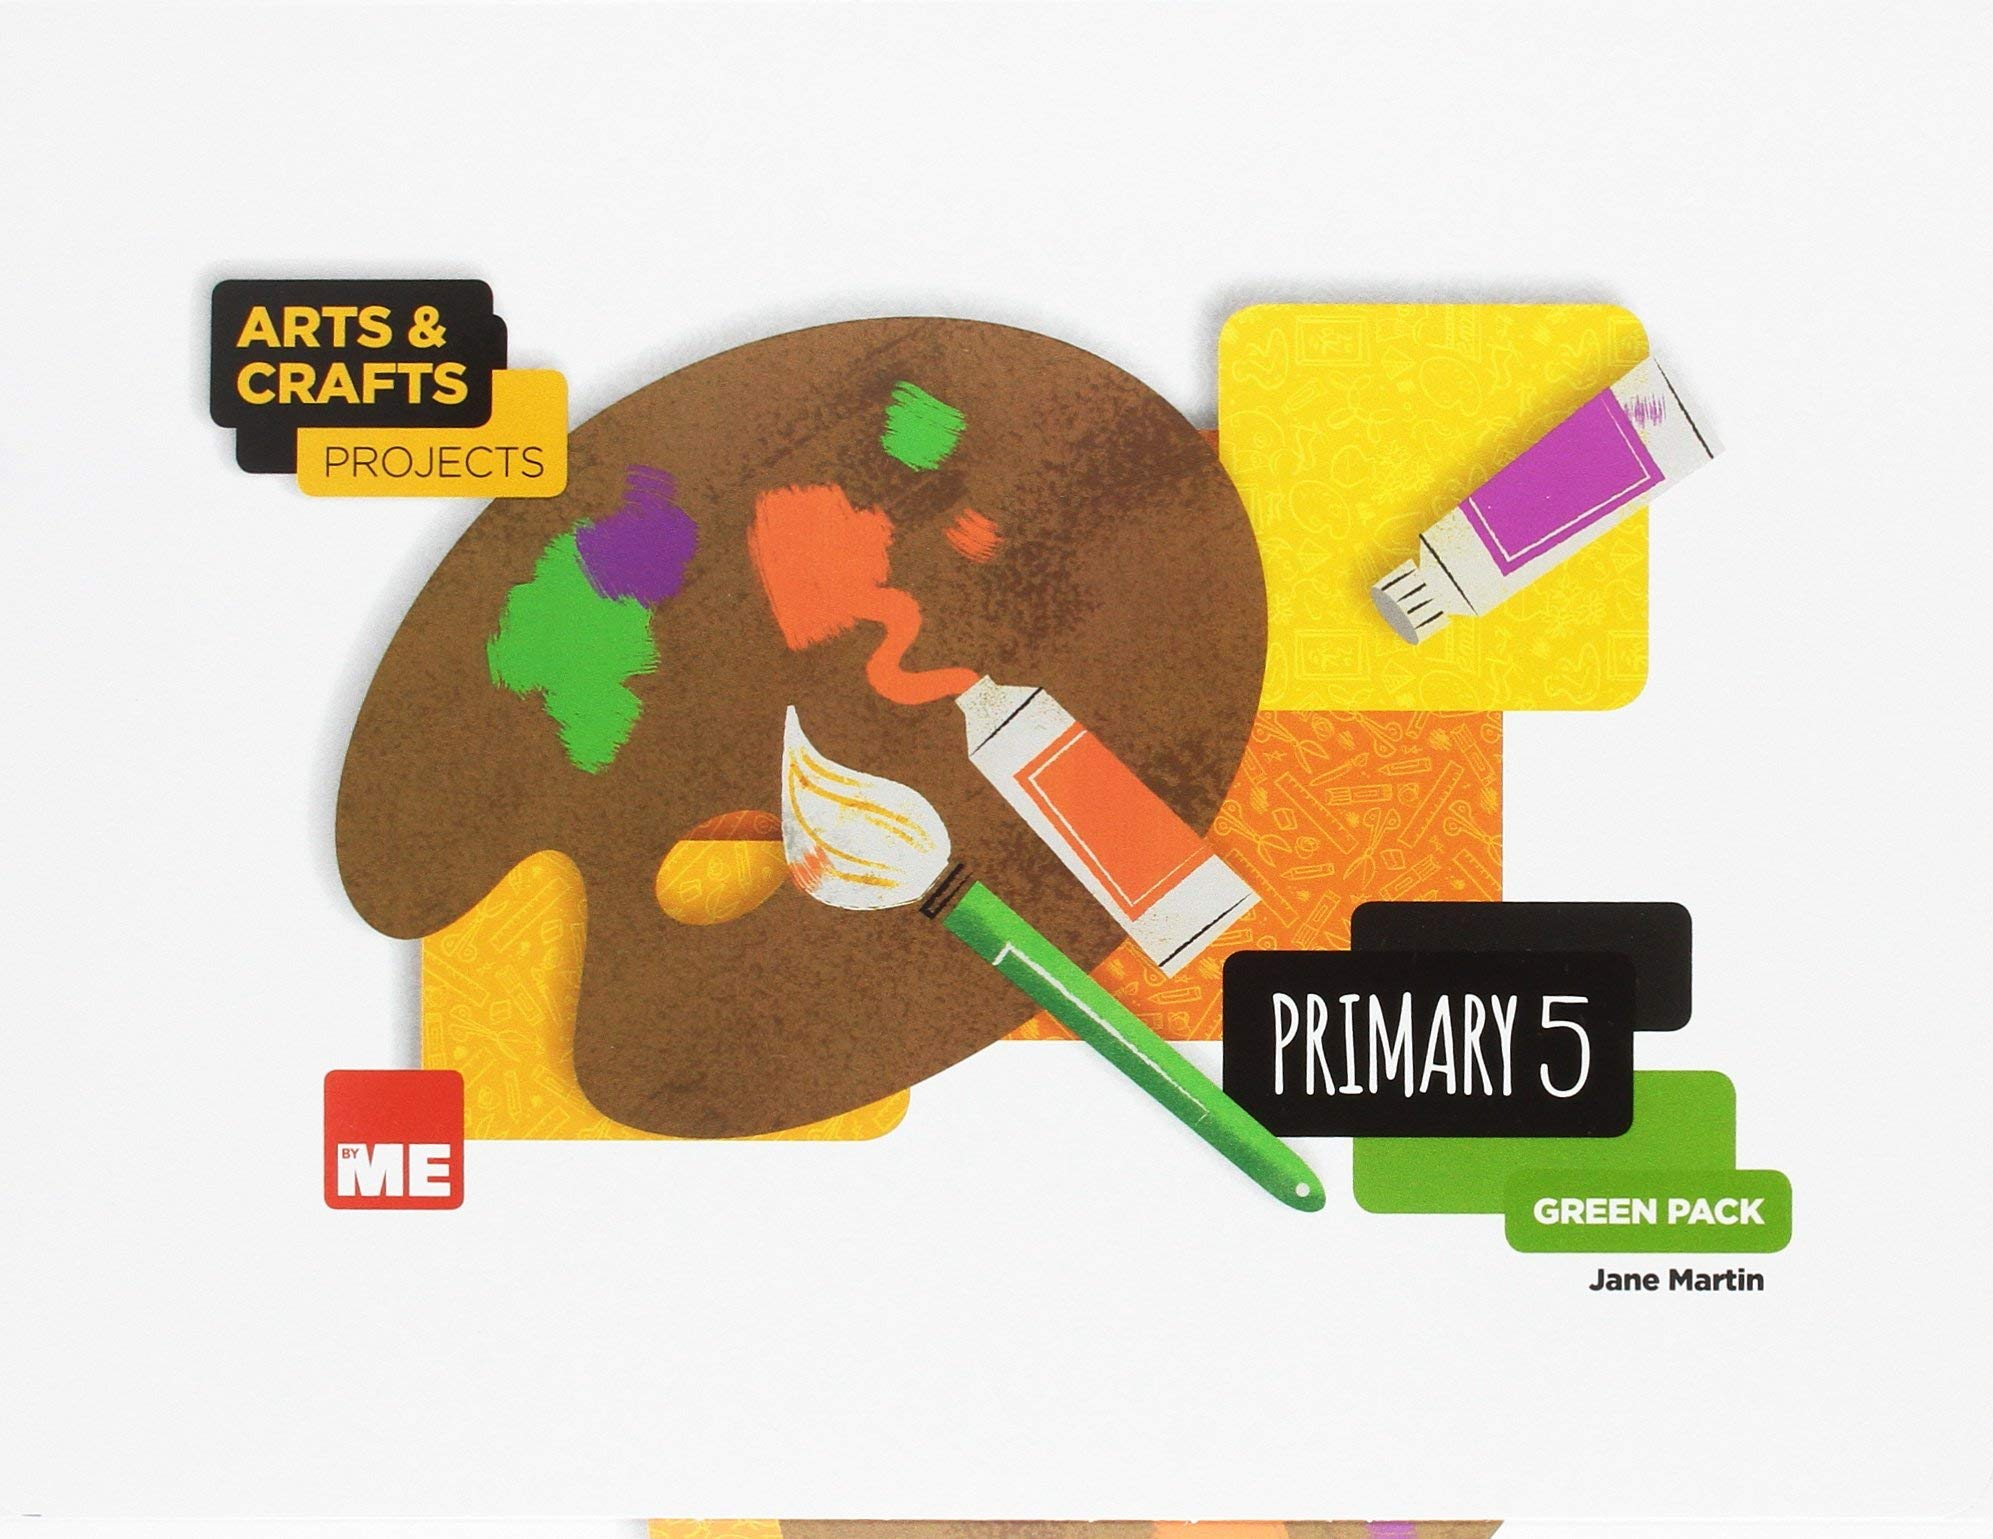 Arts and Crafts Projects 5º Green Pack Arts&Crafts Projects - 9788416888245: Amazon.es: Martin, Jane: Libros en idiomas extranjeros